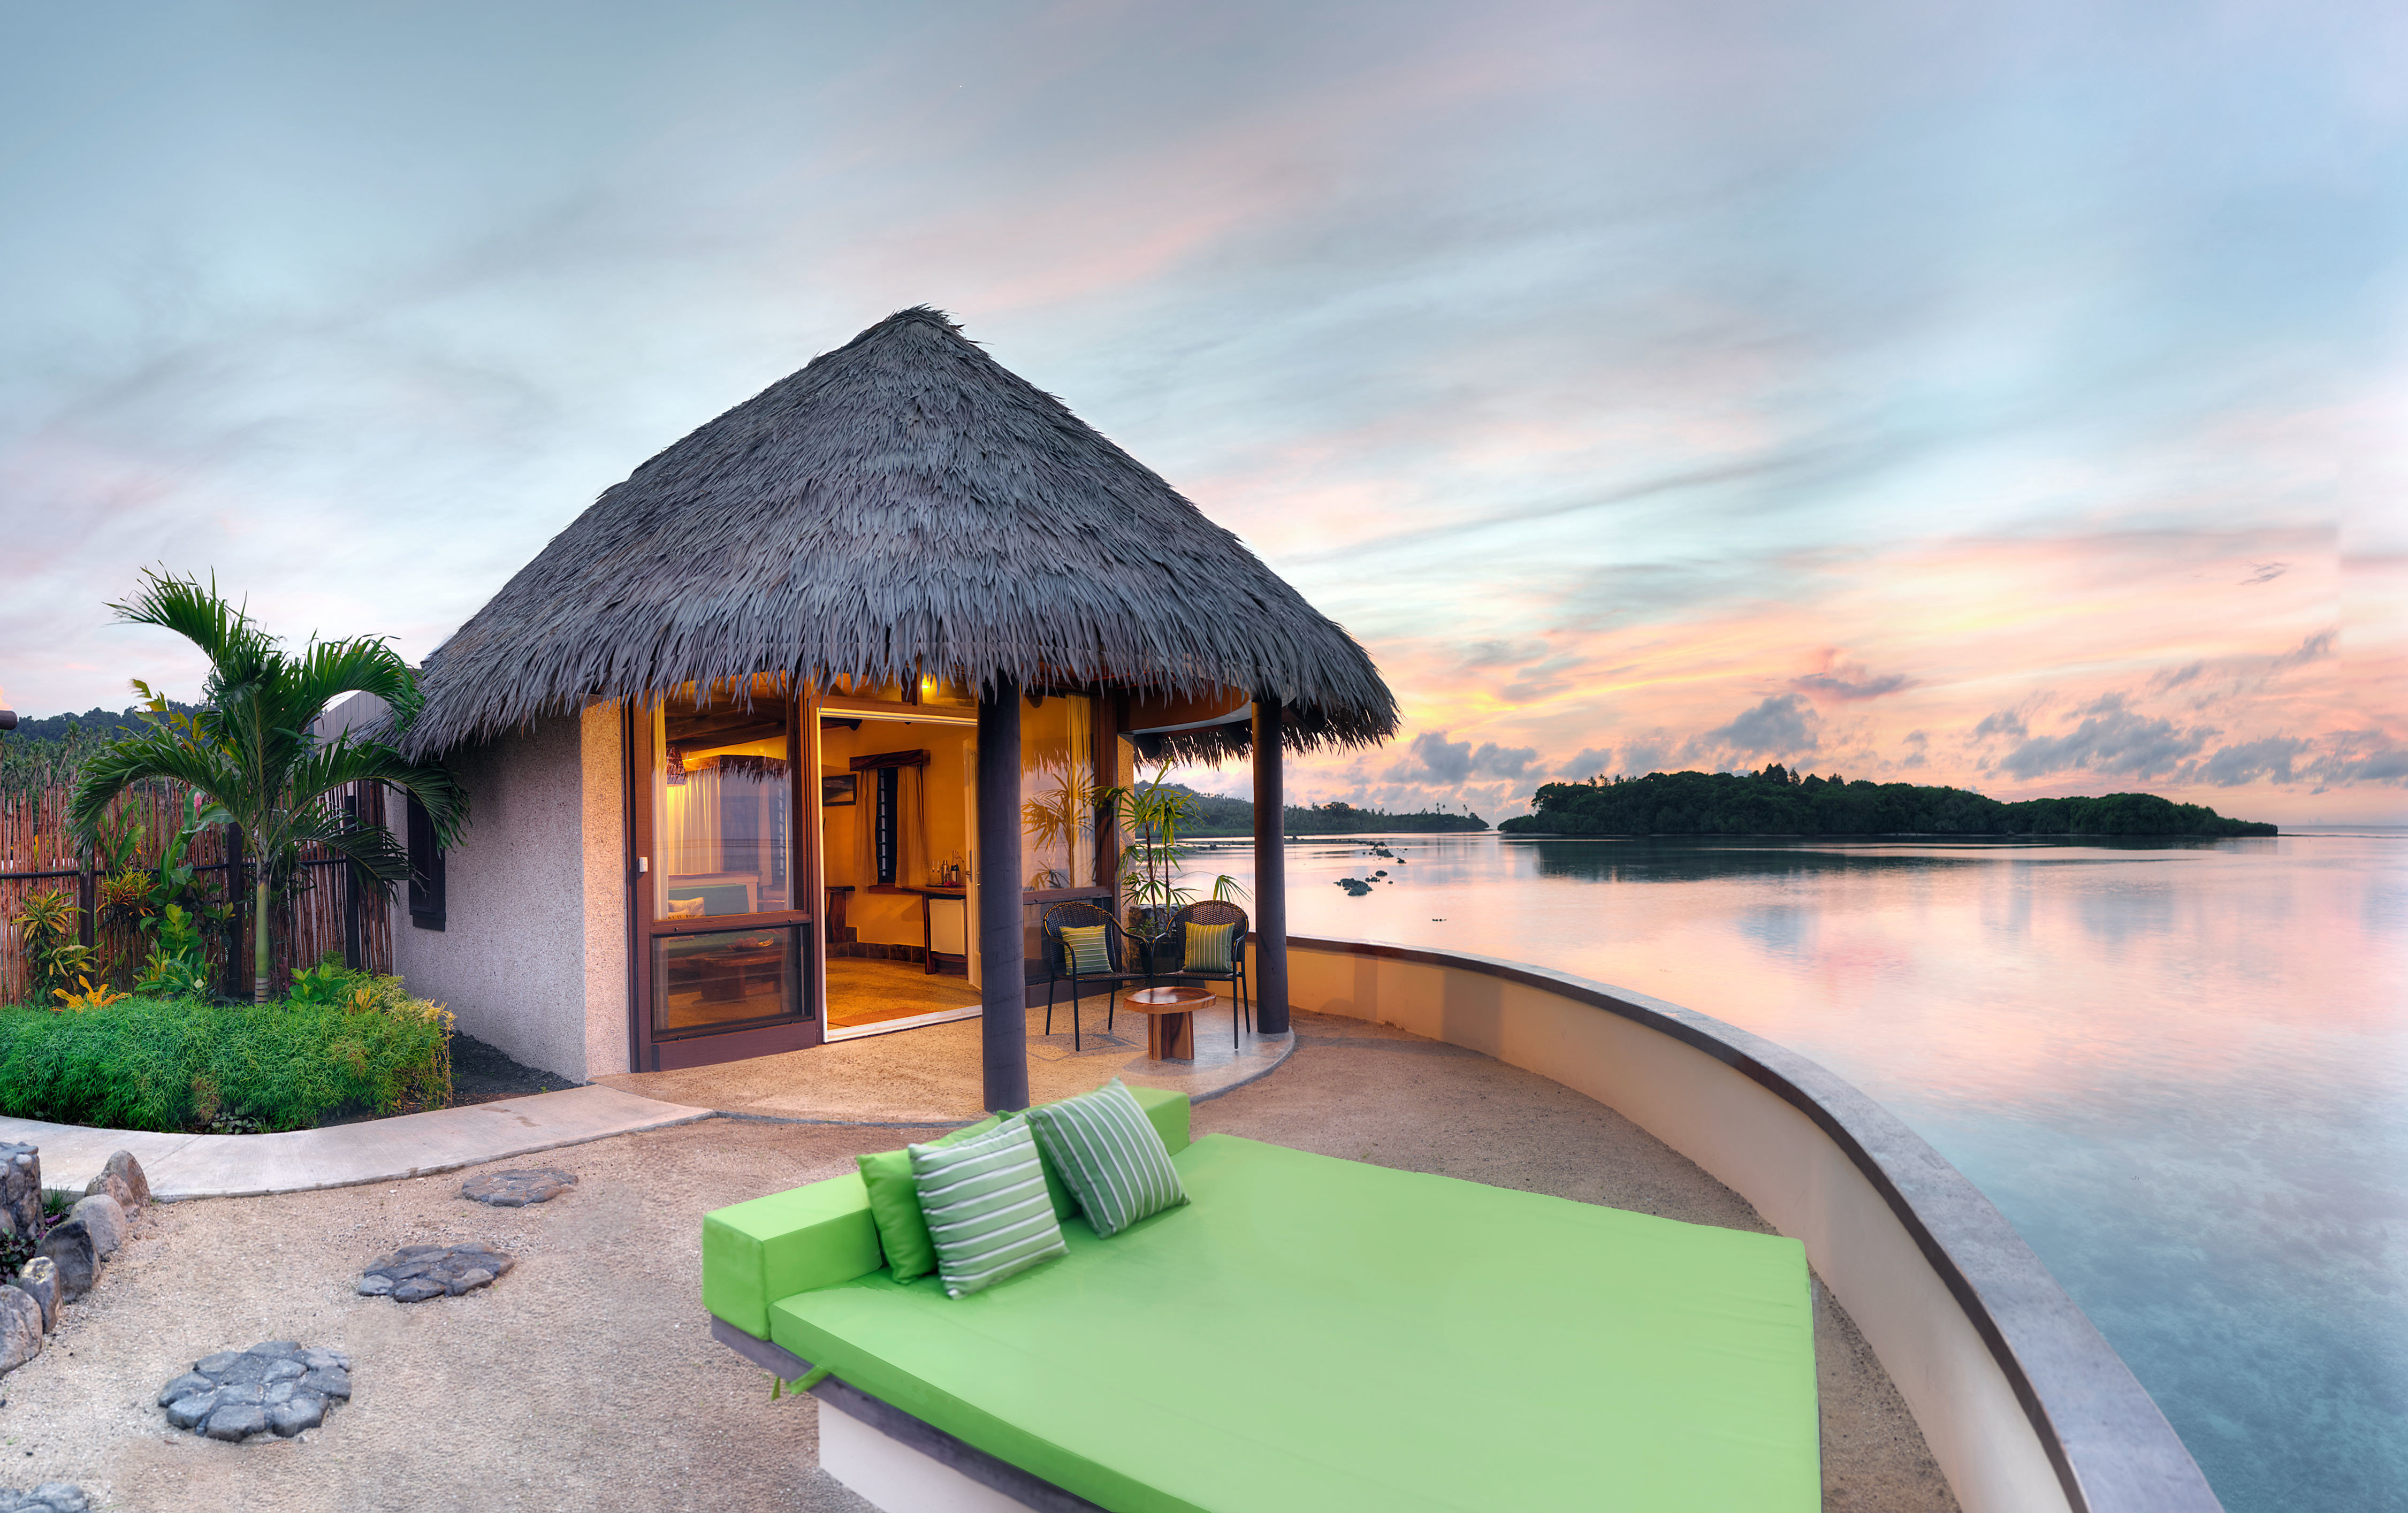 Balcony Patio Scenic views Terrace Villa Waterfront sky water property house home Resort swimming pool cottage hut